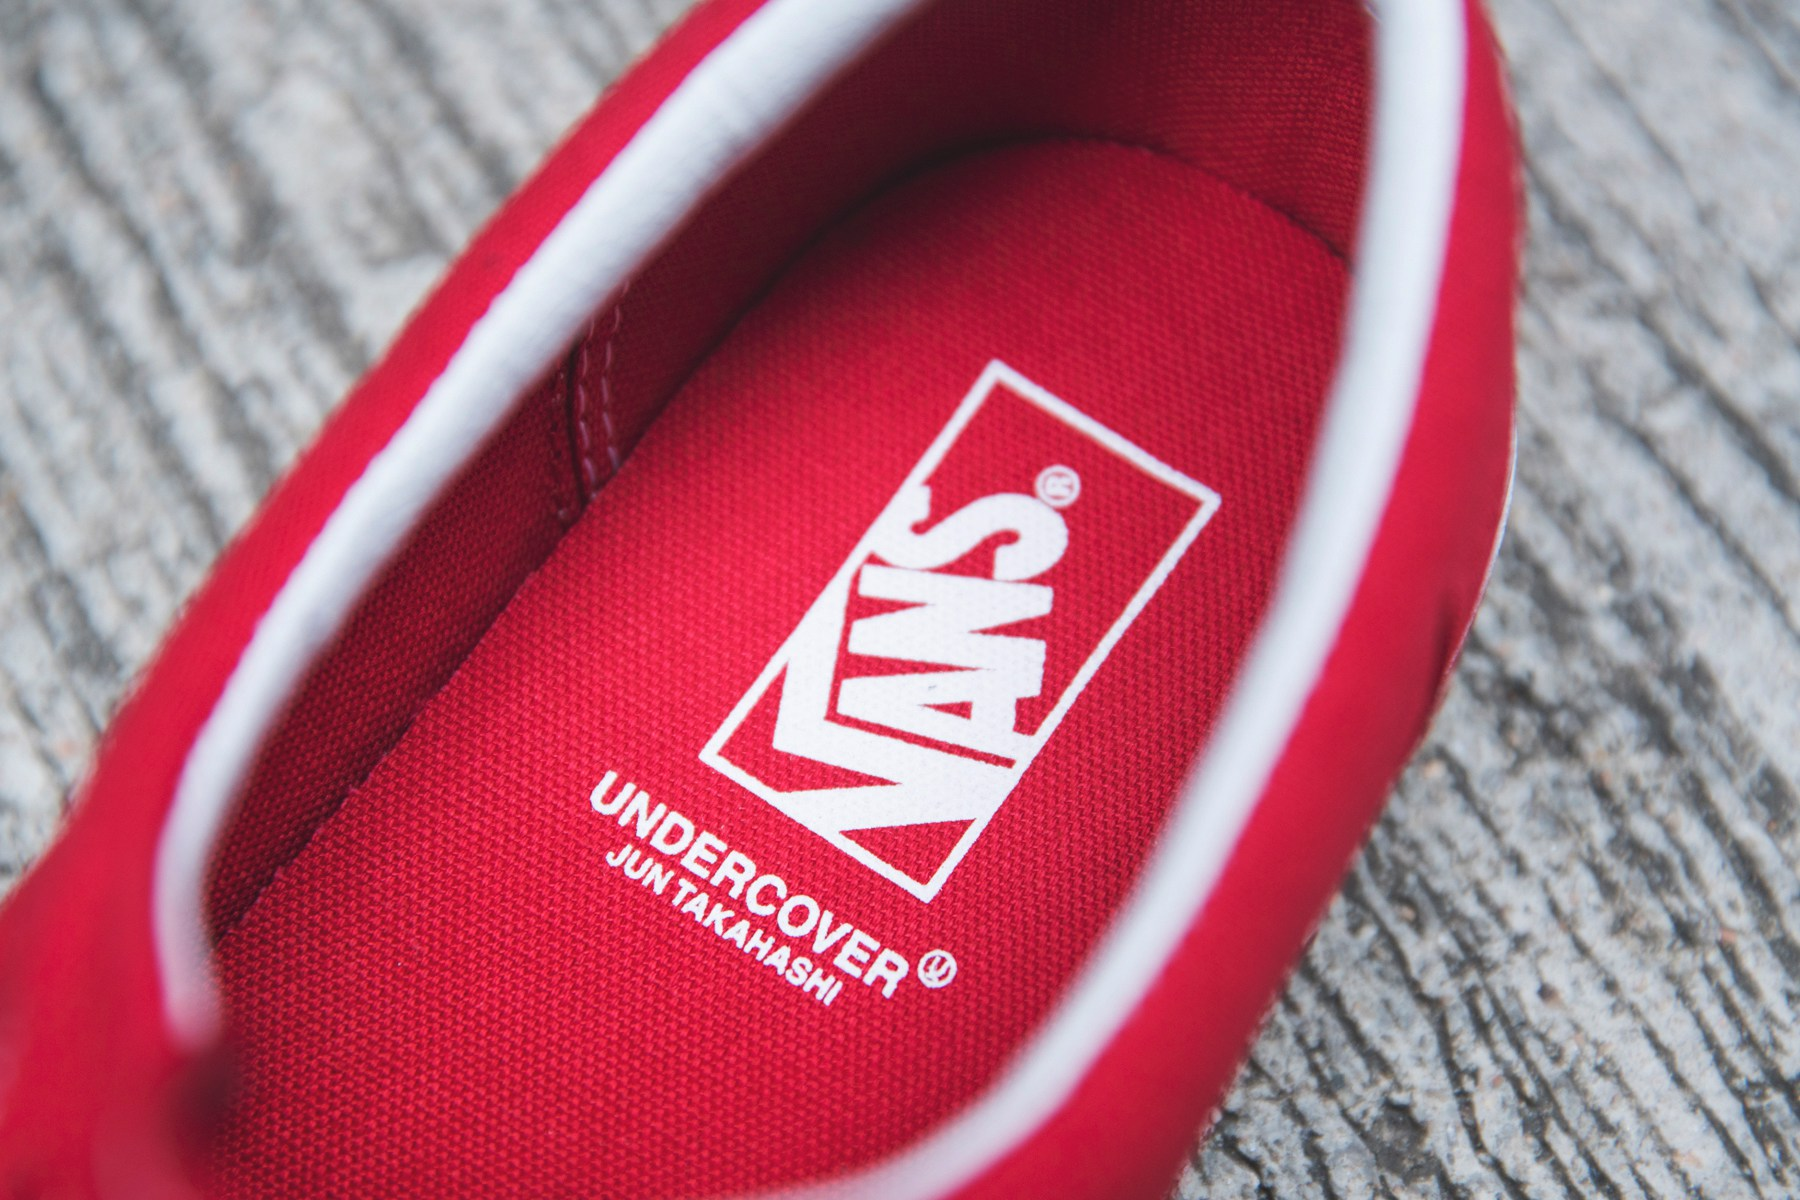 undercover-vans-2017-collaboration-368-016